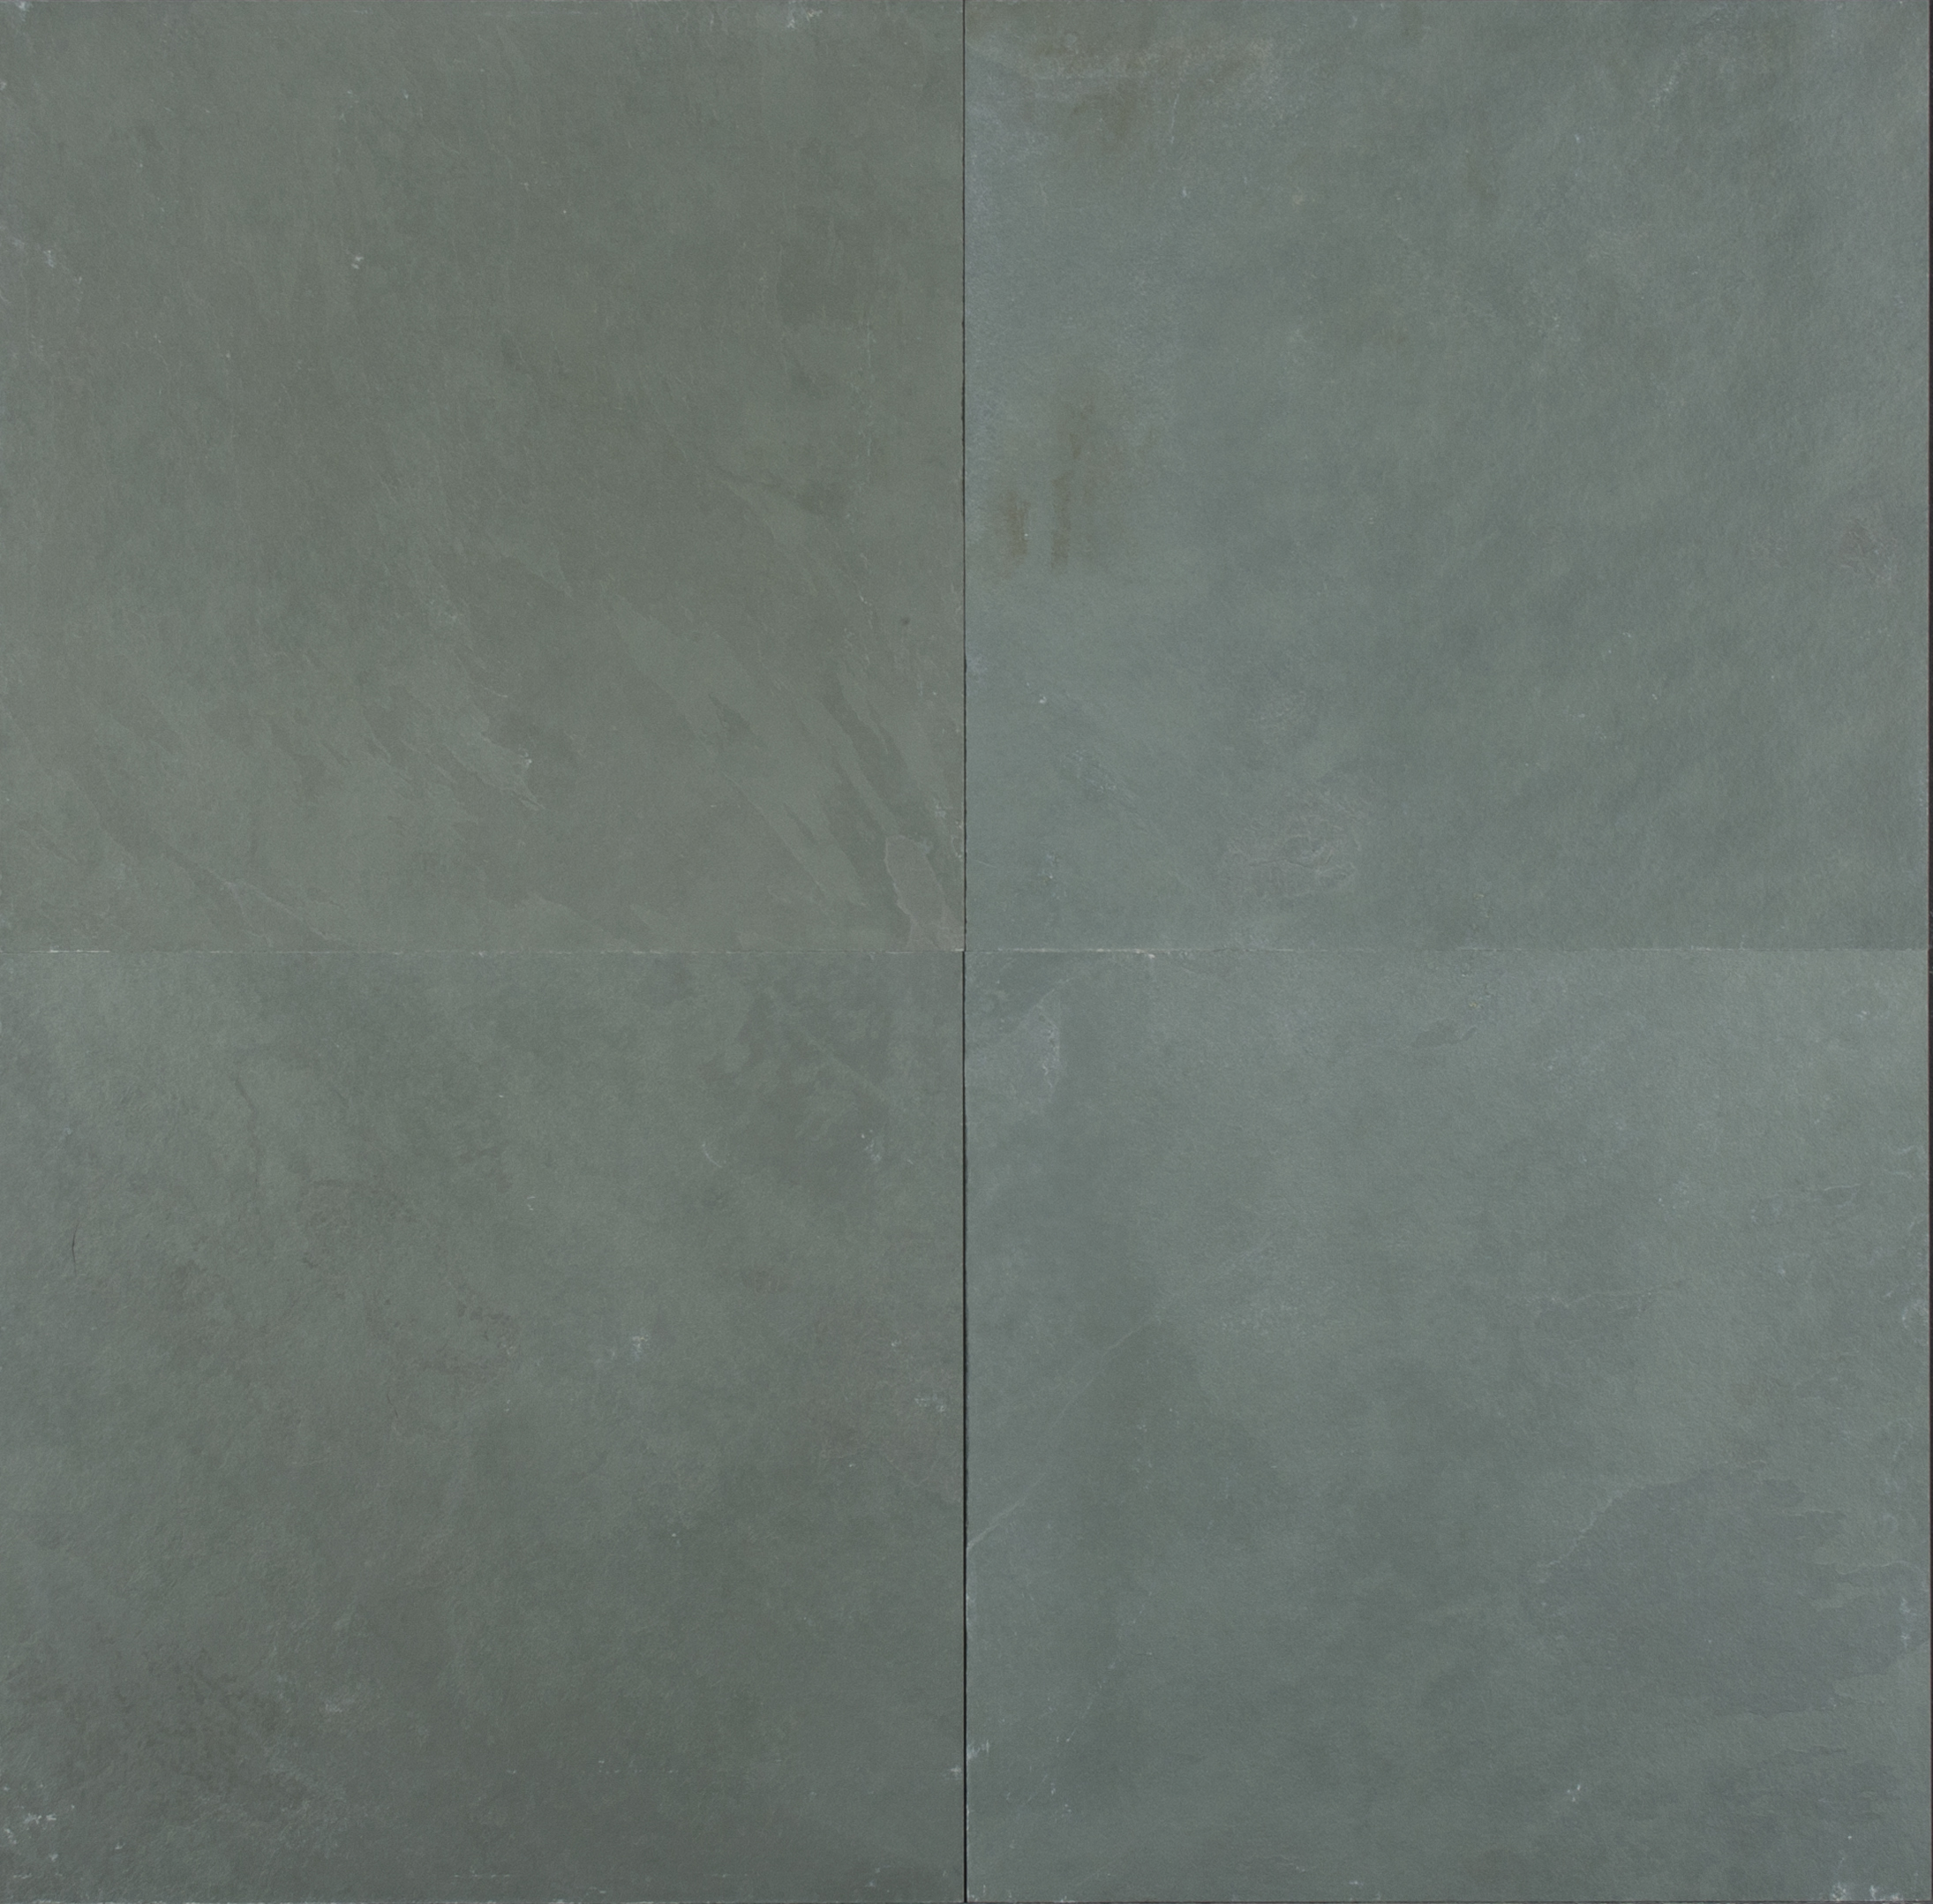 Stone design slate tile clearance green slate clearance green slate clearance stone design dailygadgetfo Image collections